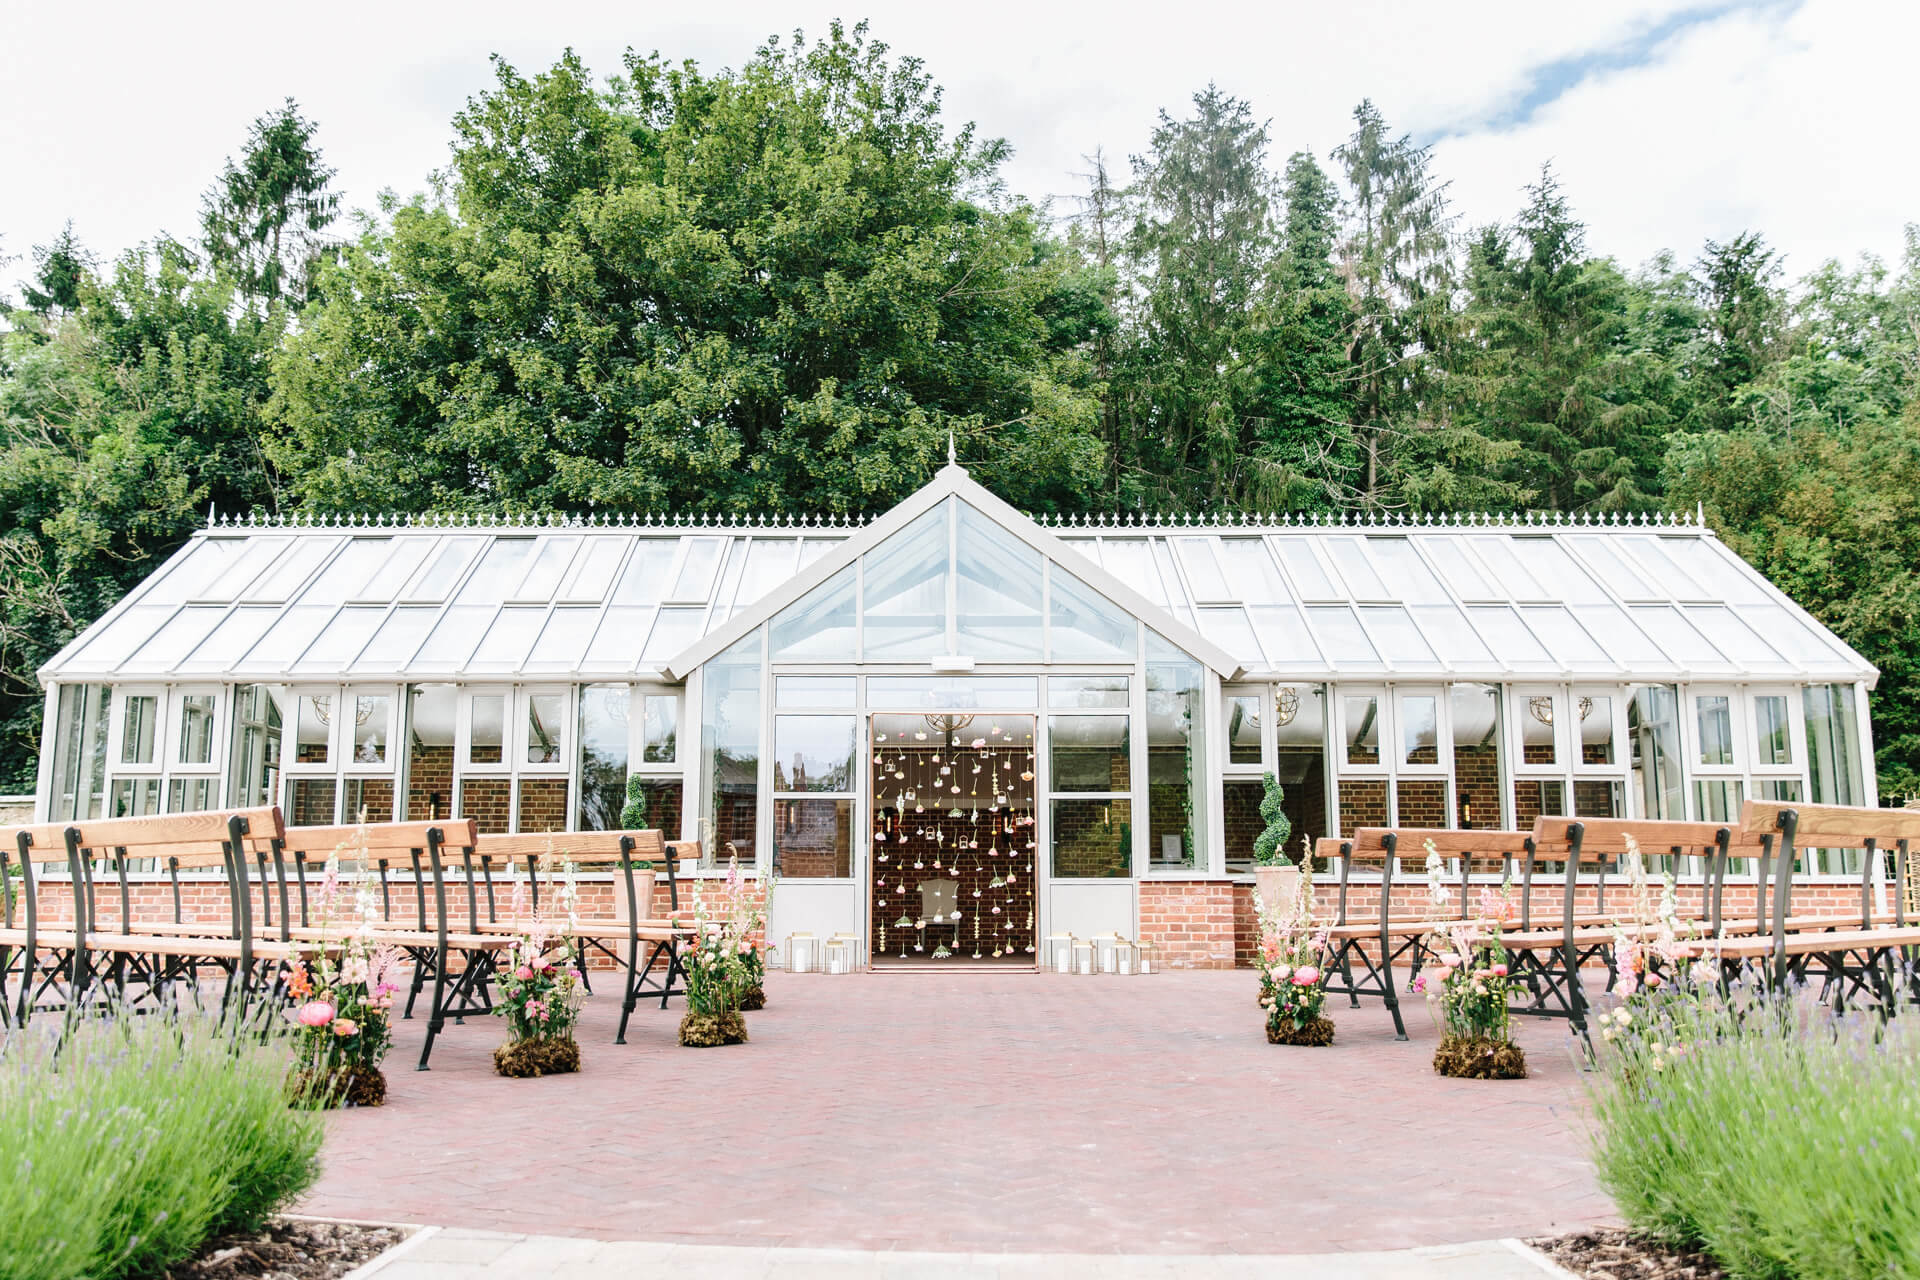 The Glasshouse at Syrencot